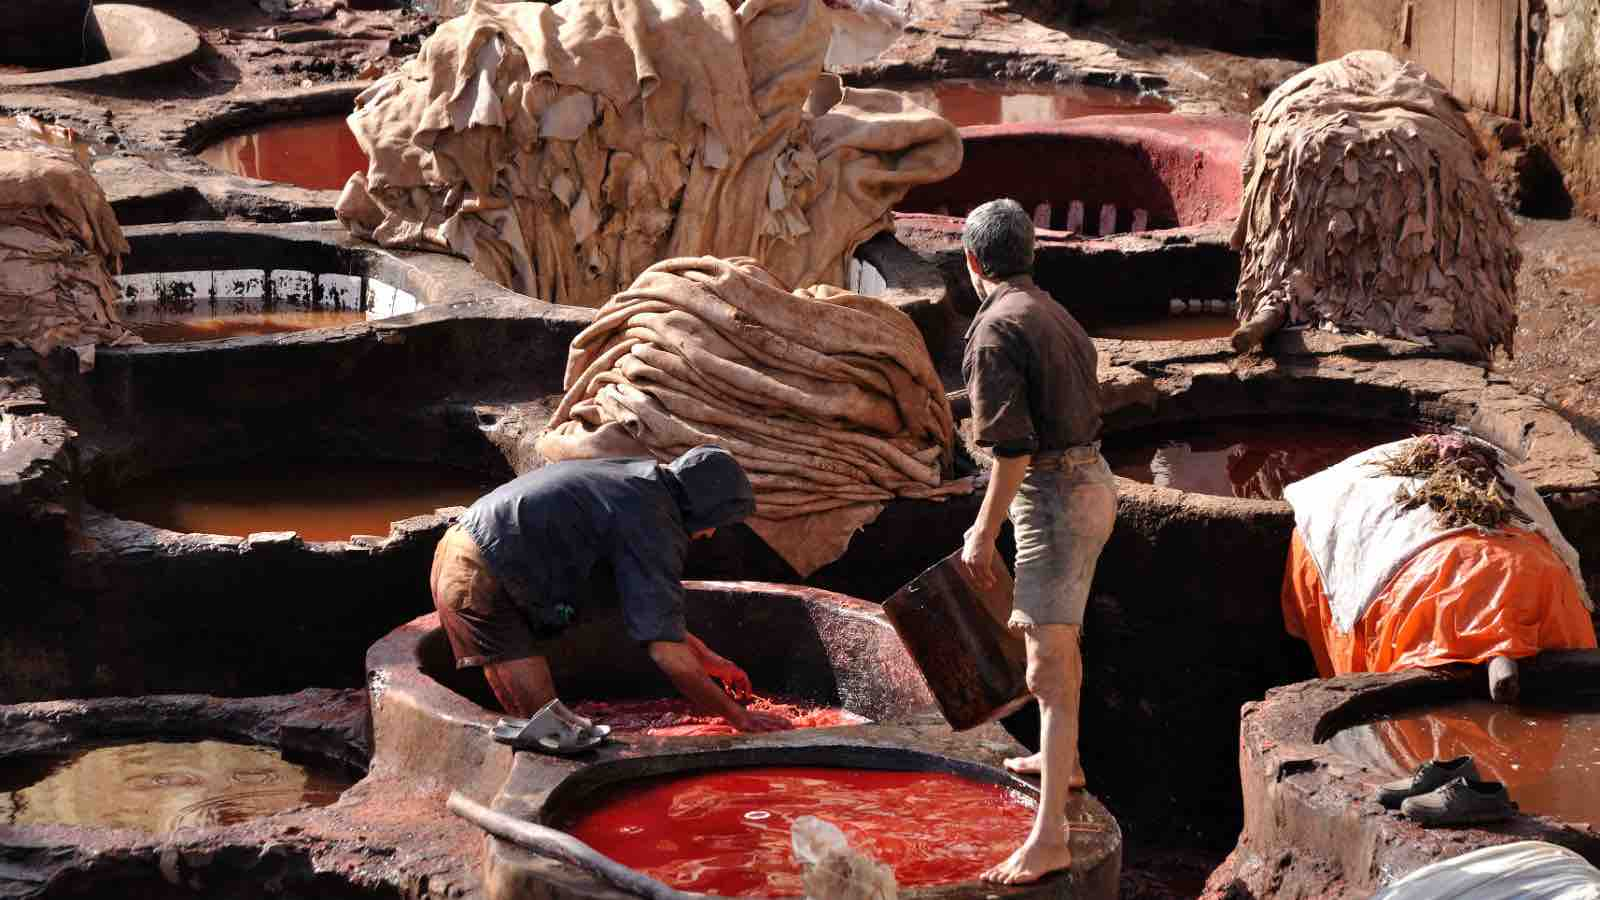 leather tannery human rights issues